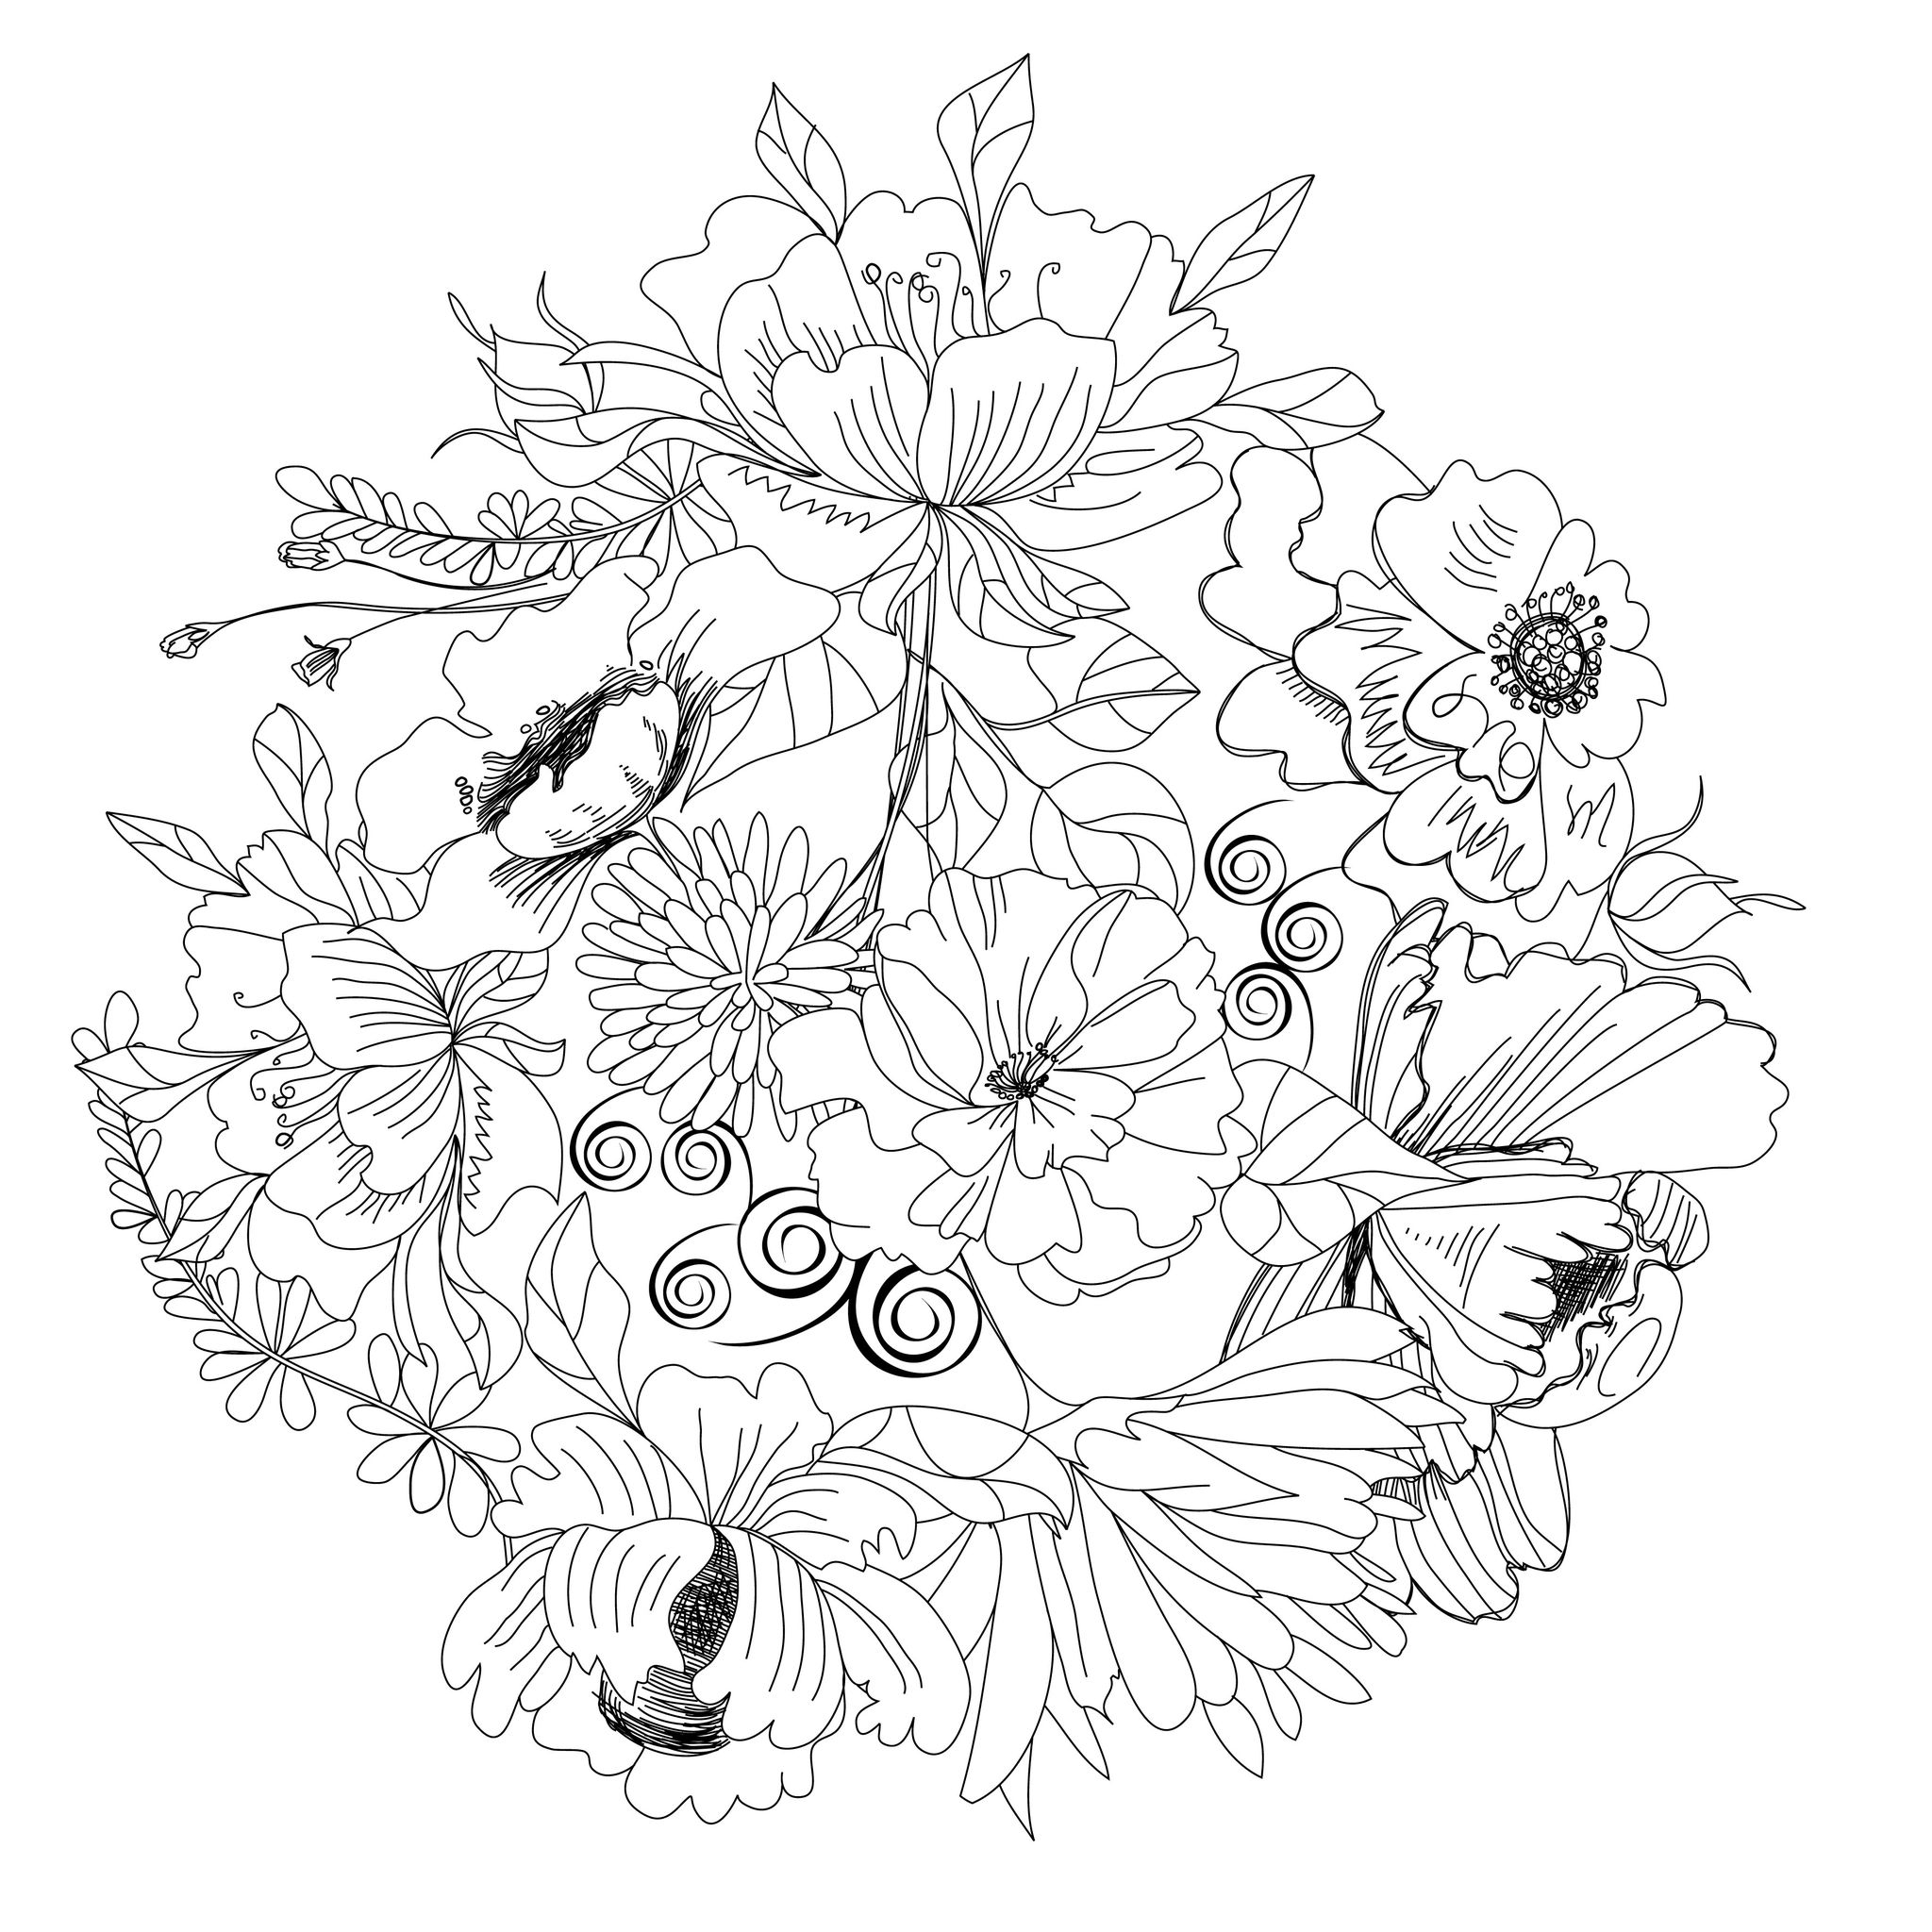 enchanted forest coloring pages - coloriage nature paysage